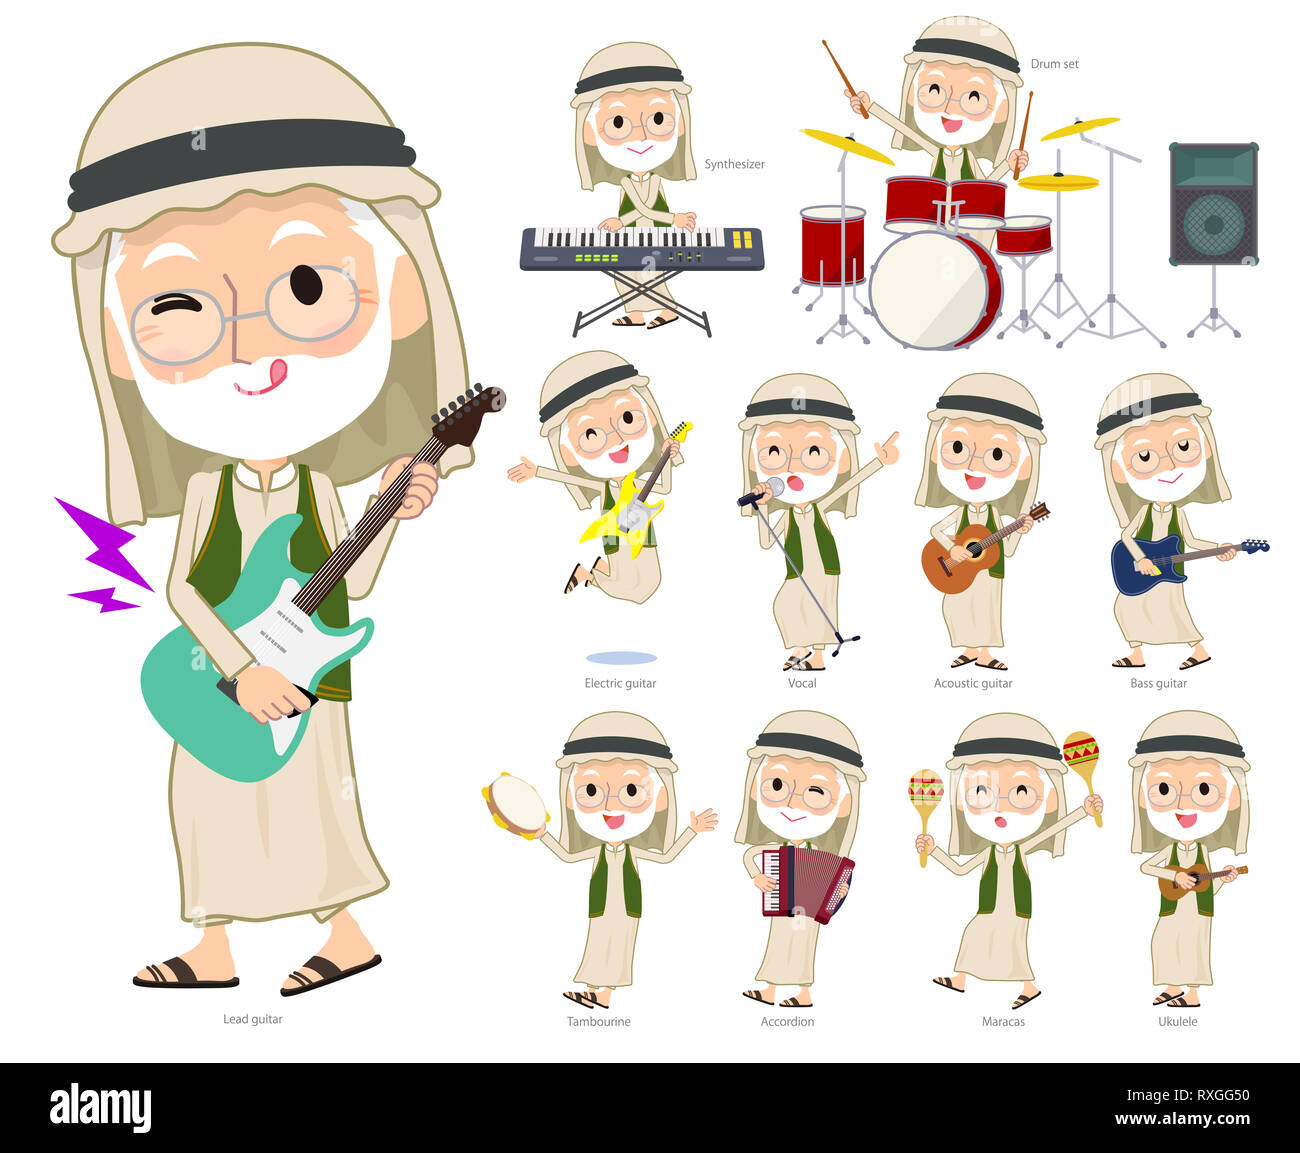 A set of Arabian old men playing rock 'n' roll and pop music.There are also various instruments such as ukulele and tambourine.It's vector art so it's - Stock Image